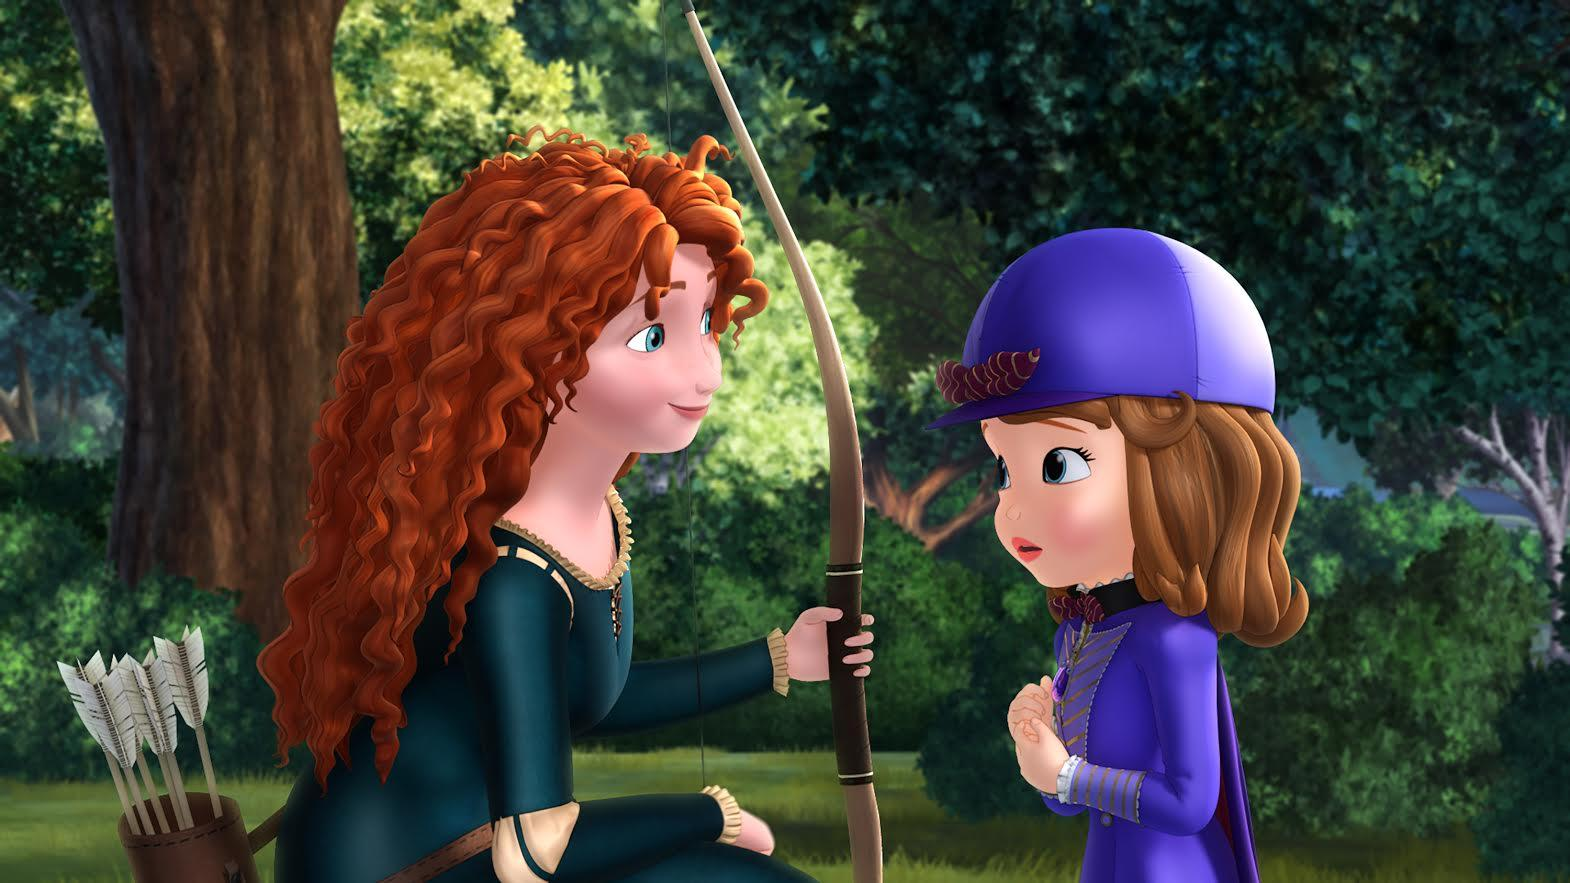 'Brave' Princess Merida to Appear on Disney Junior's 'Sofia the First'